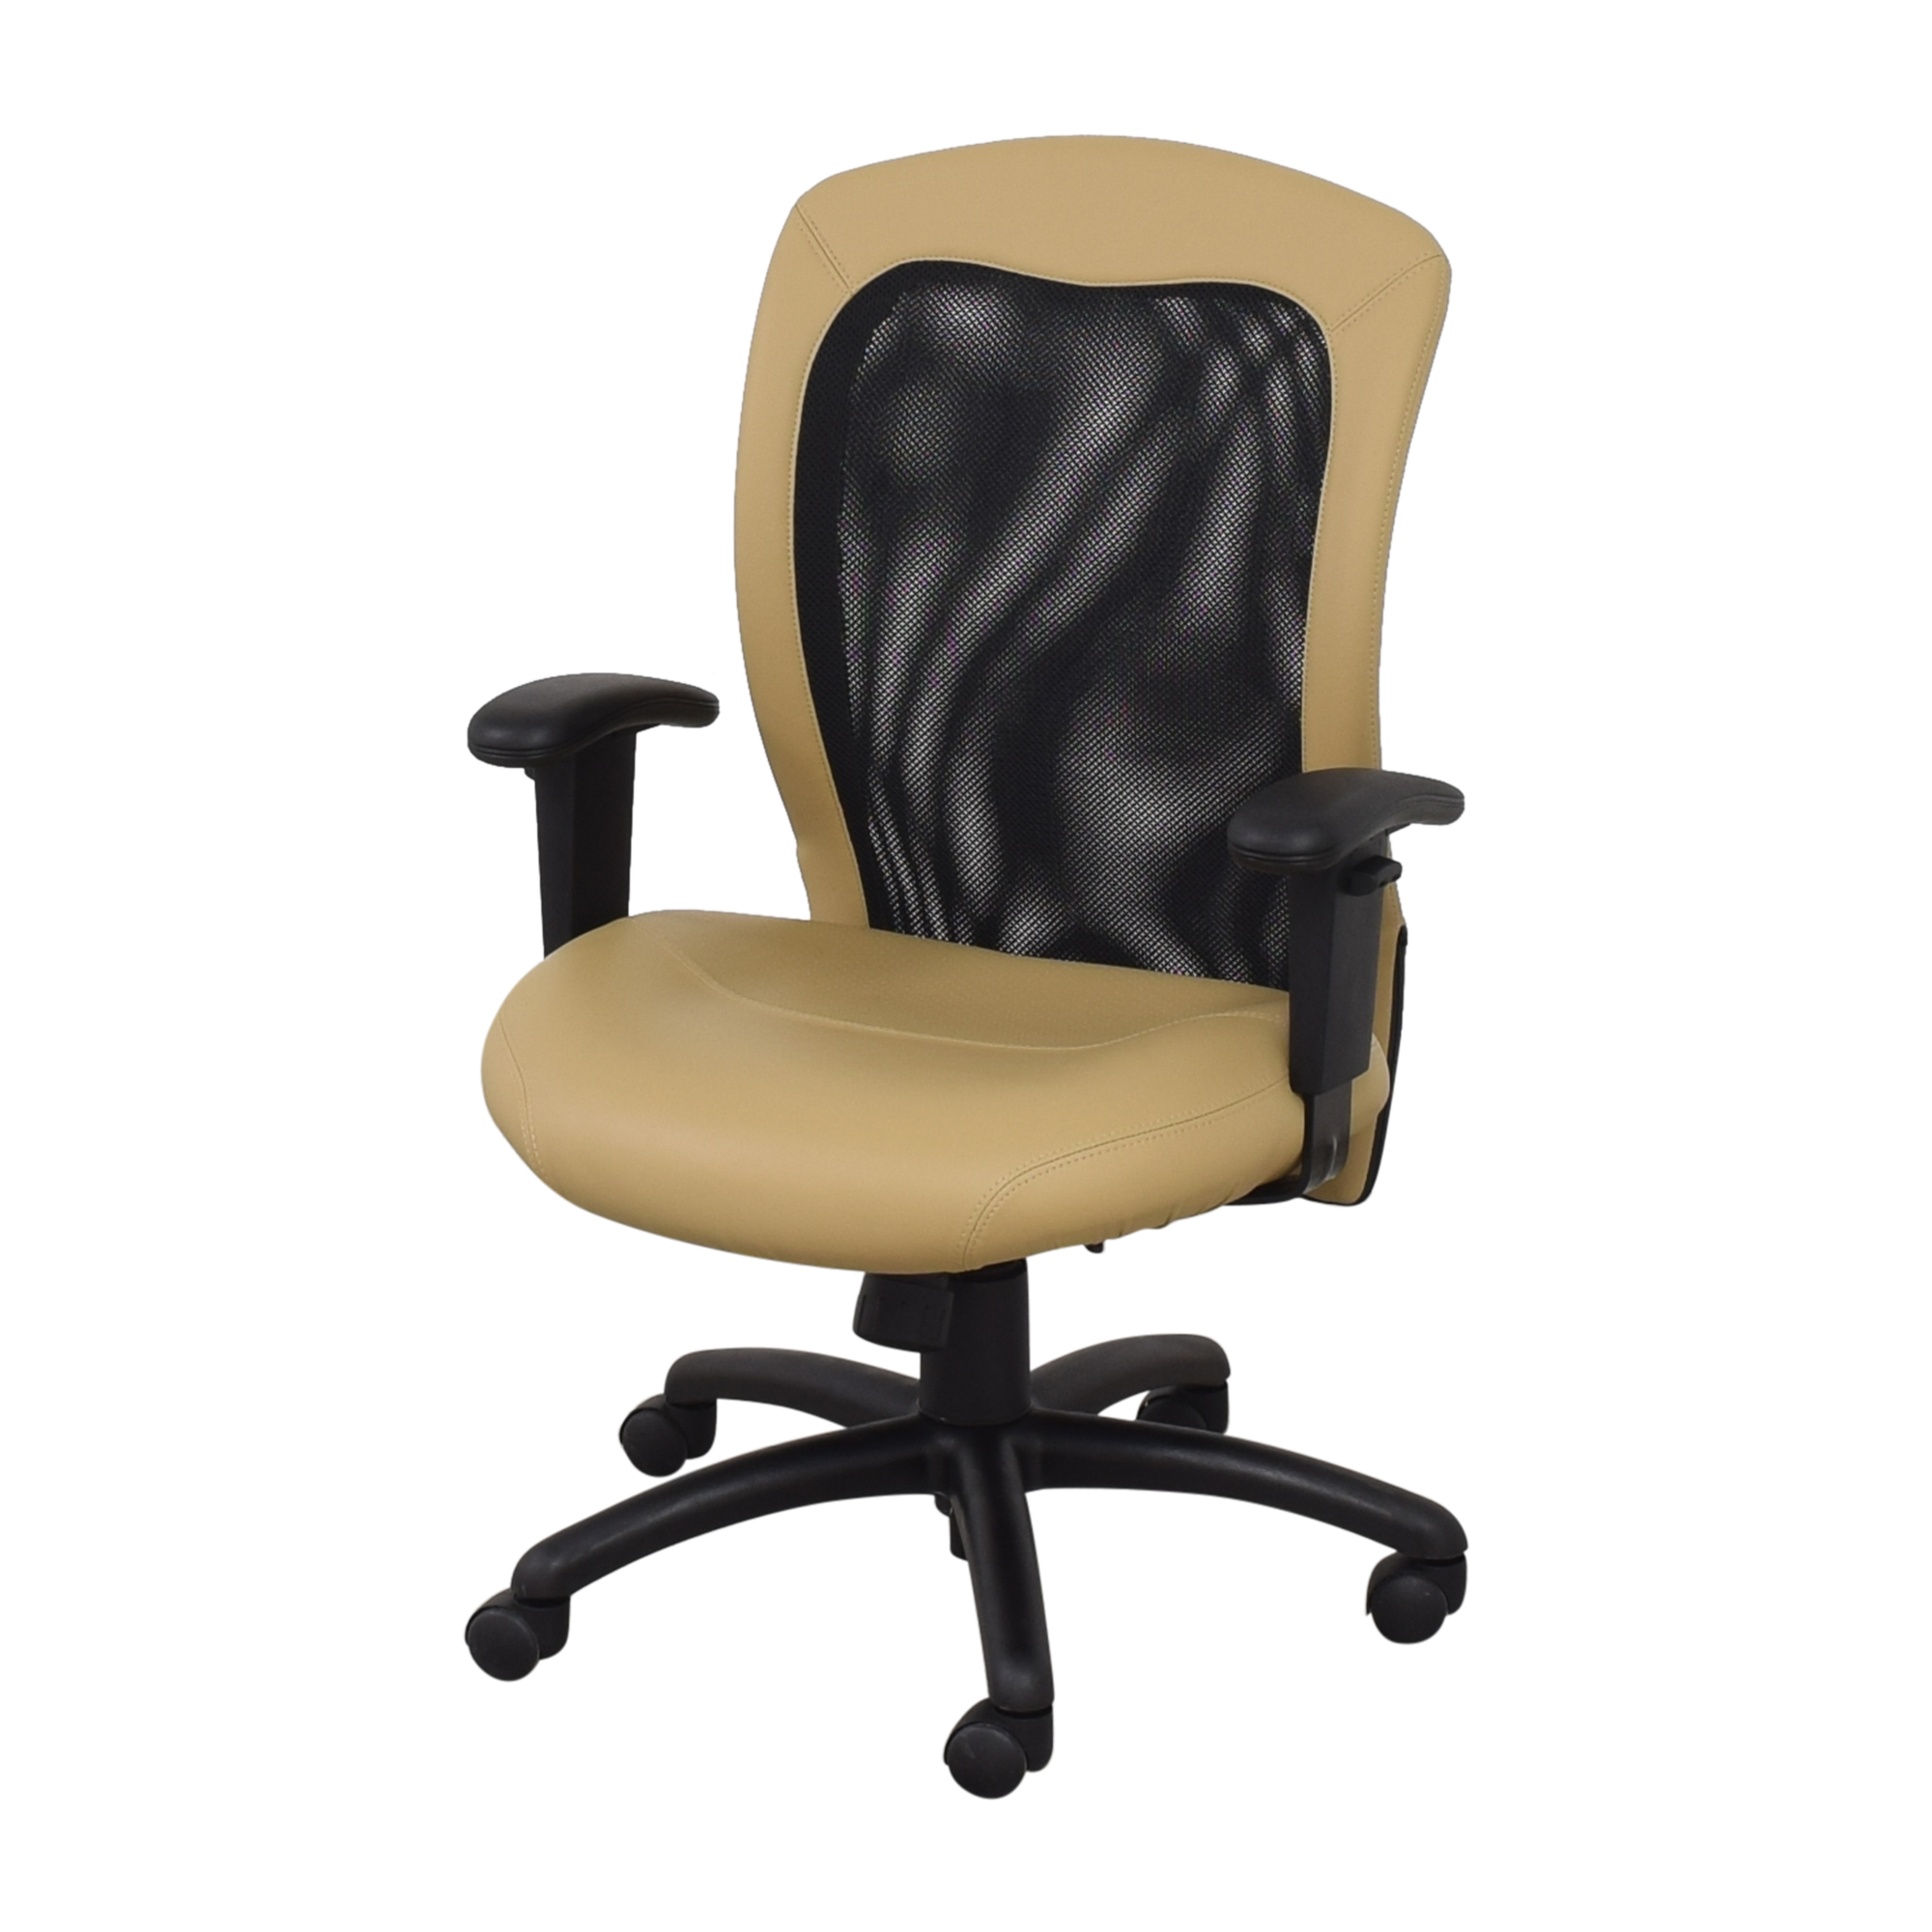 Offices to Go Offices to Go Mesh Back Tilter Office Chair on sale